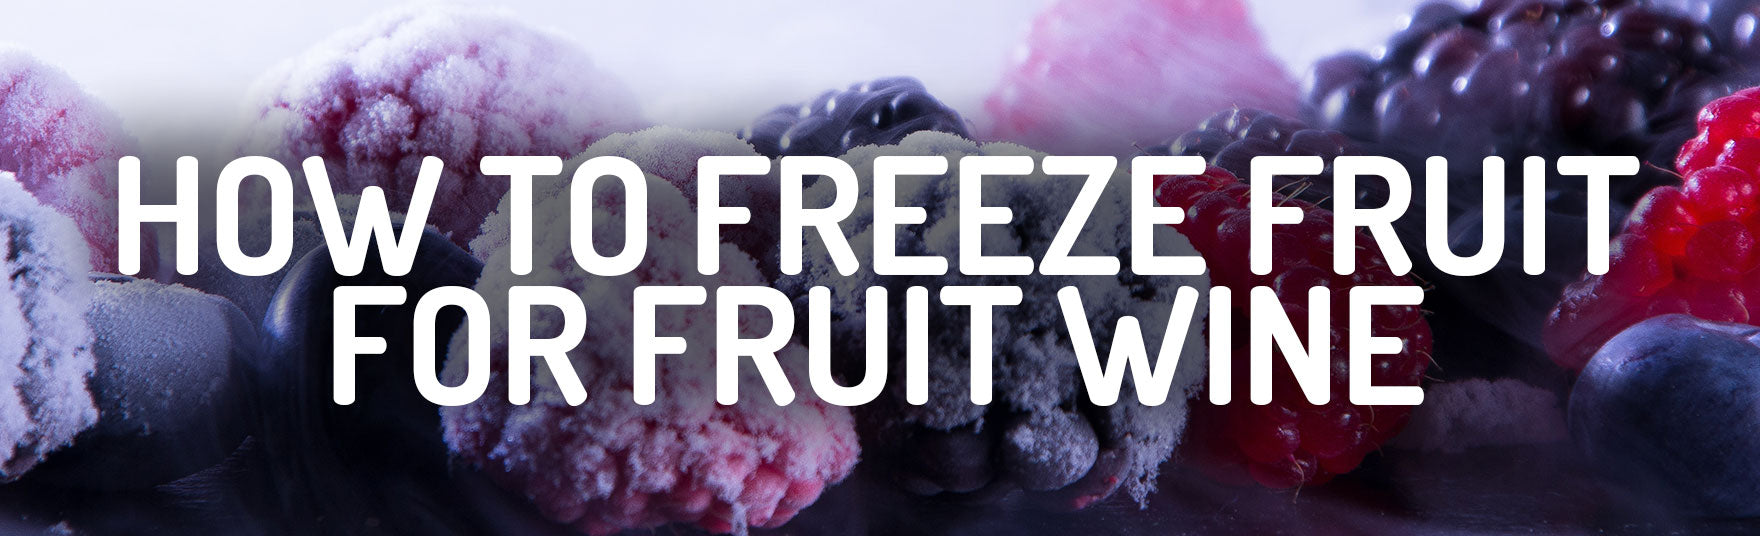 How To Freeze Fruit For Fruit Wine